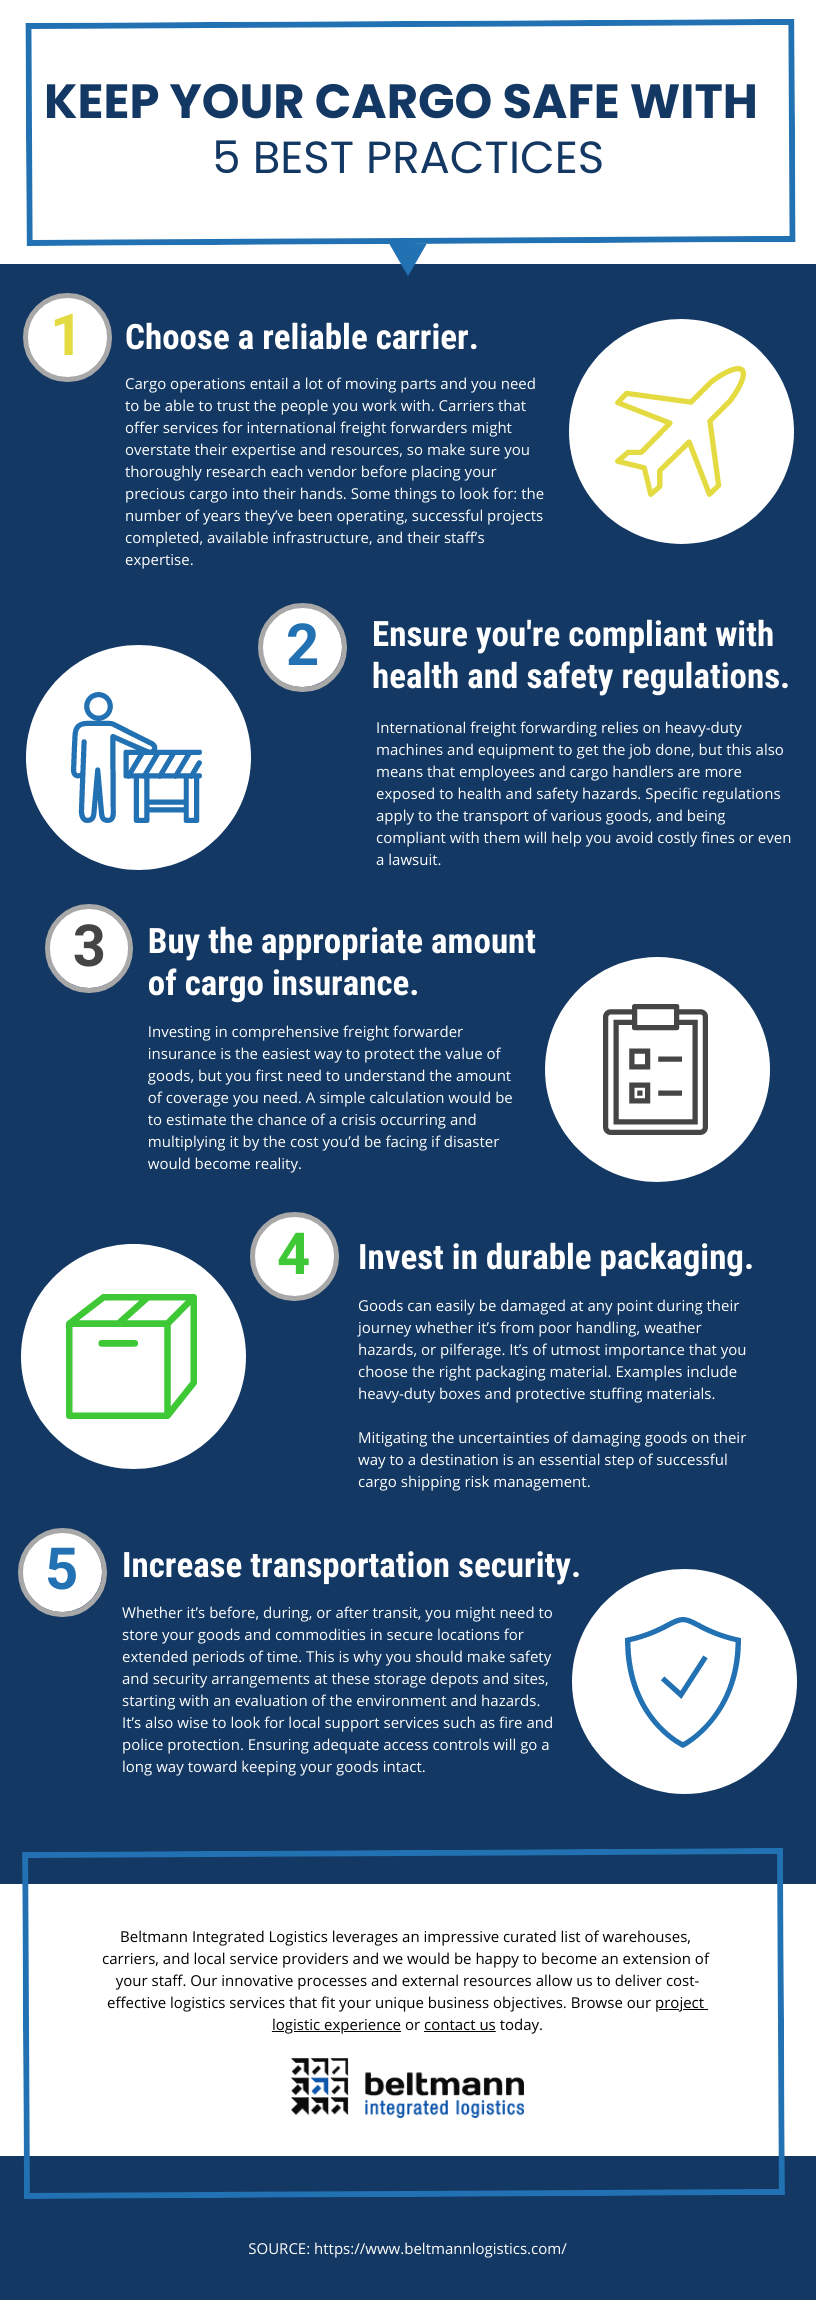 BIL - Keep Your Cargo Safe With 5 Best Practices Infographic-1